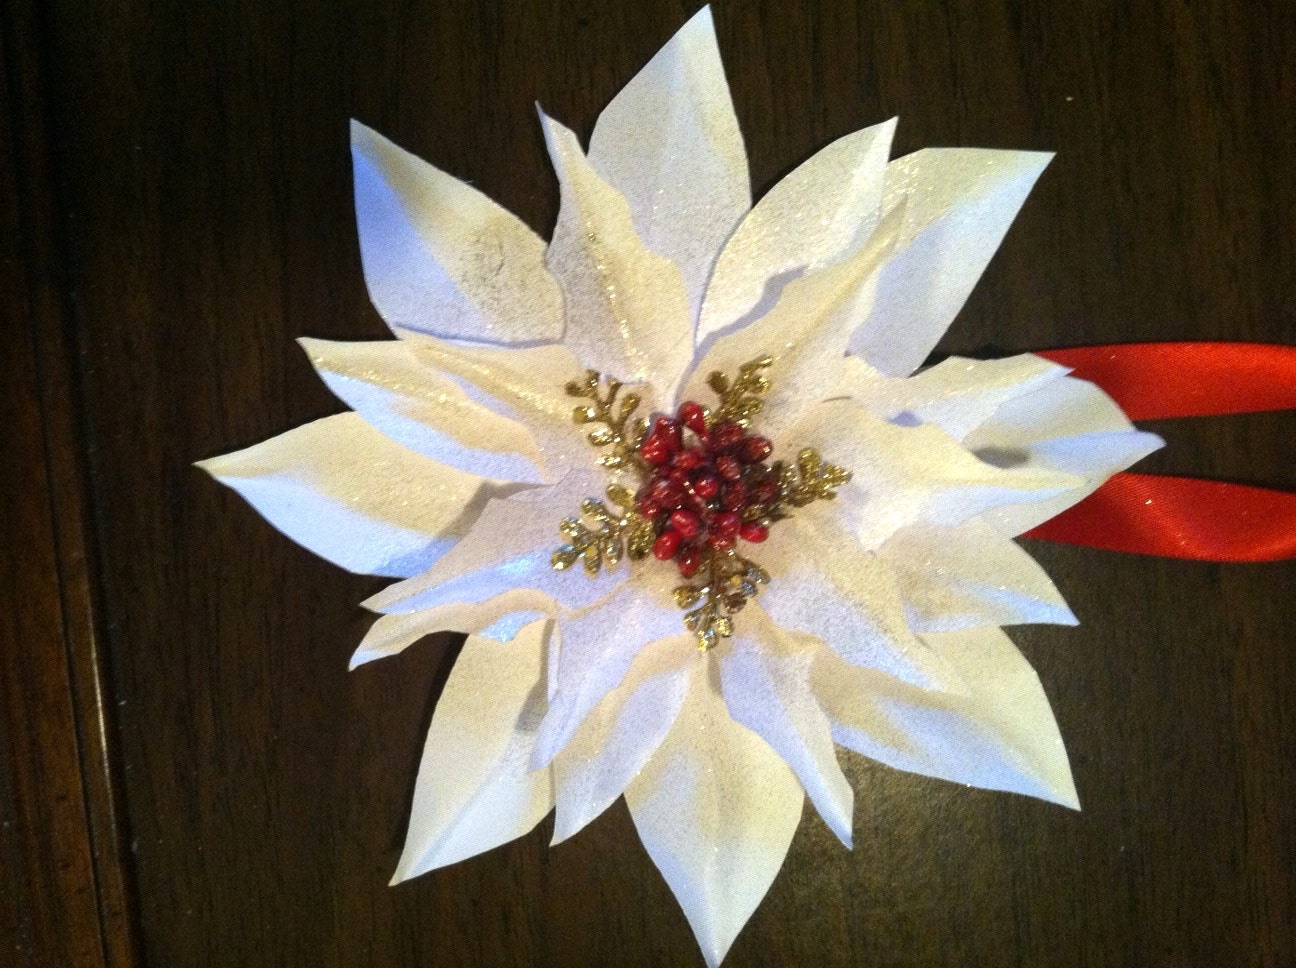 Paper flower poinsettia christmas ornament 8 zoom mightylinksfo